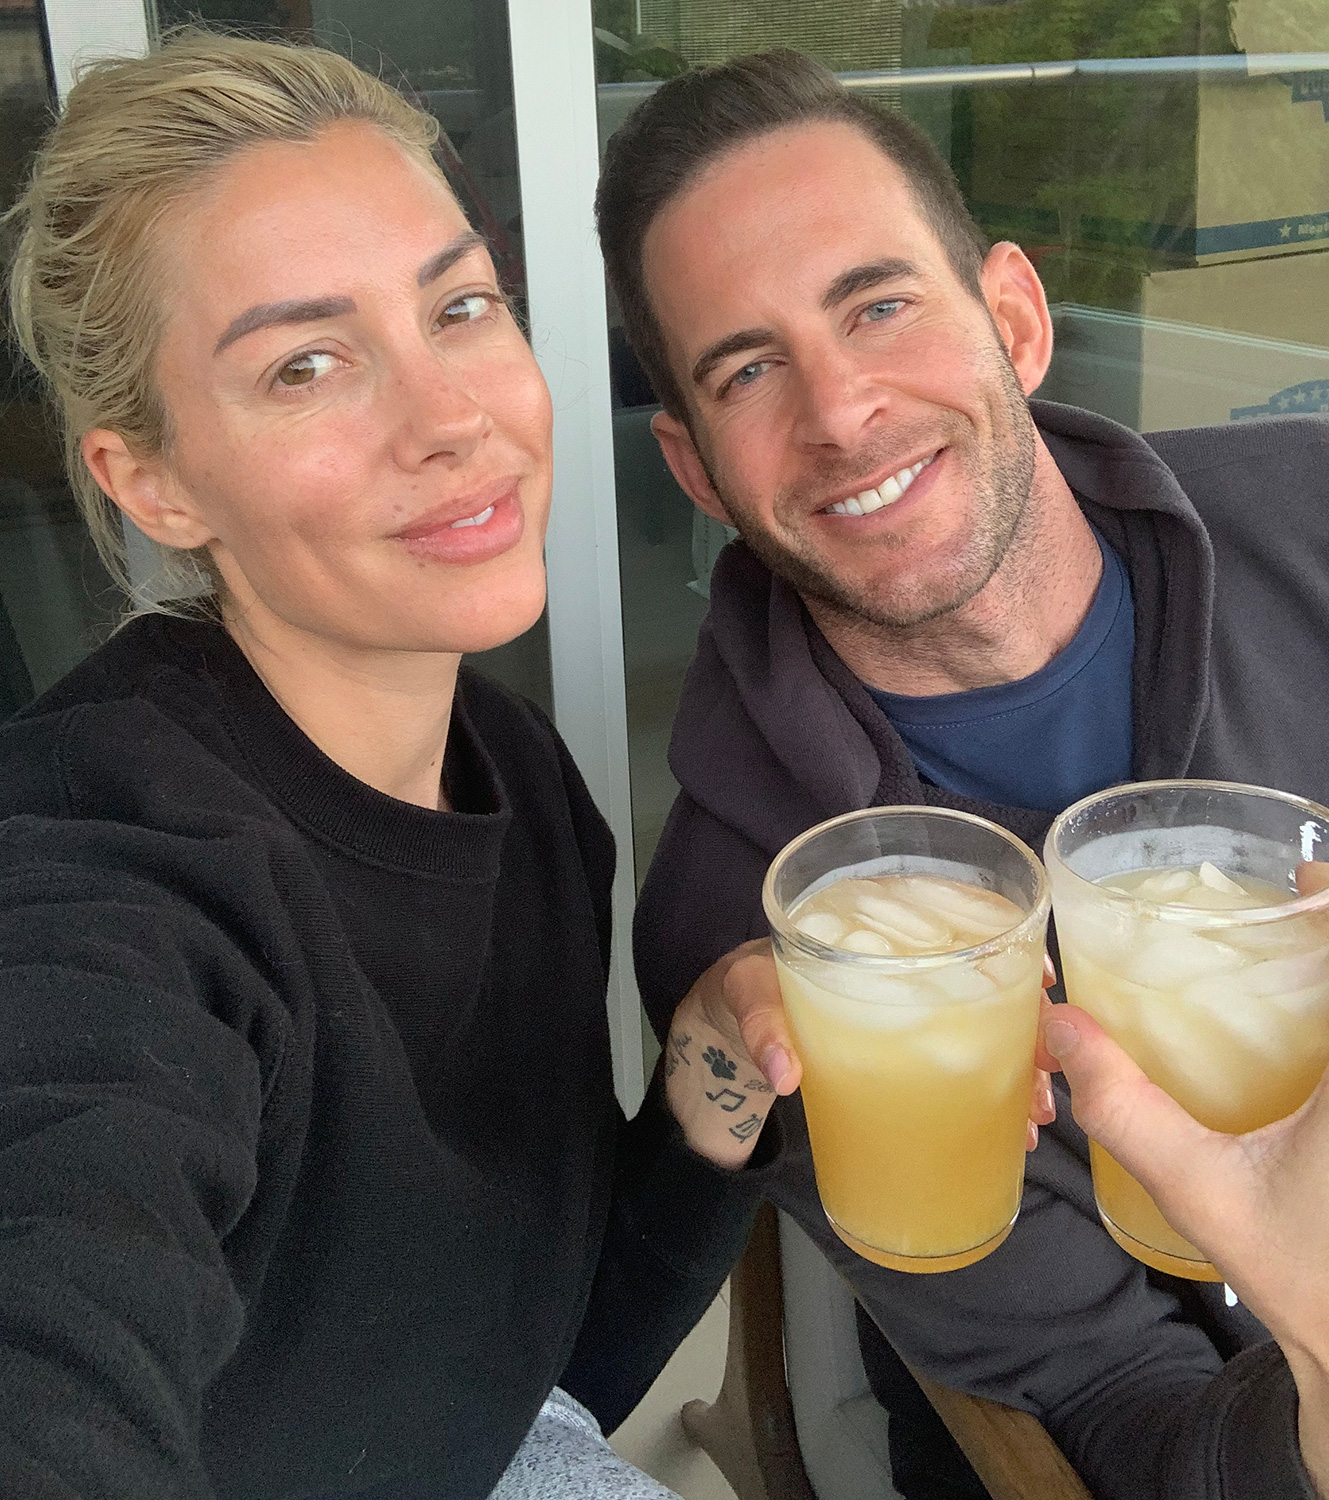 Tarek El Moussa and Heather Rae Young move